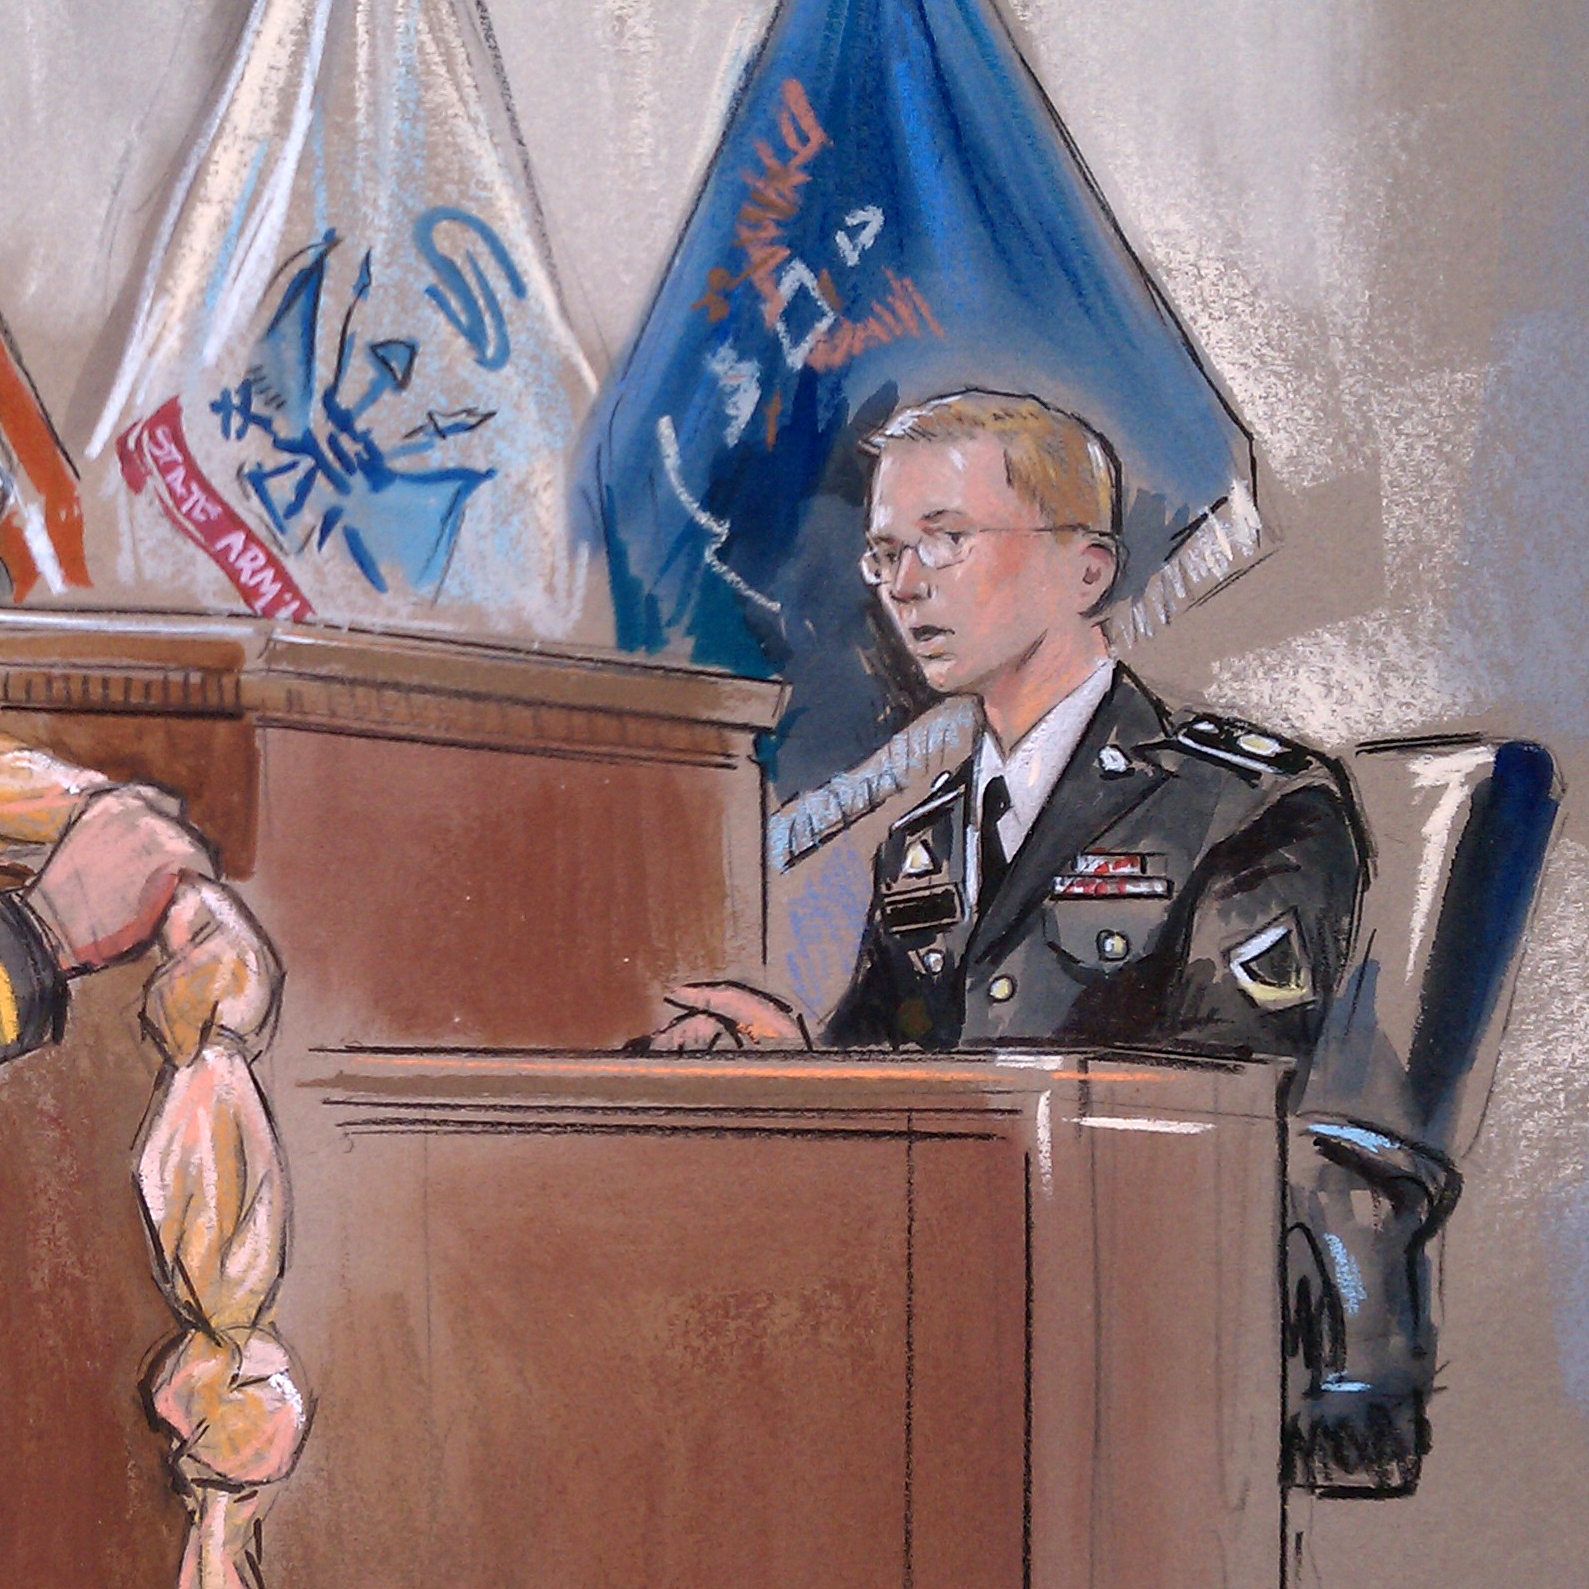 This artist rendering shows Army Pfc. Bradley Manning, right, being shown a bedsheet as he testified in his pretrial Wikileaks hearing in Fort Meade, Md.